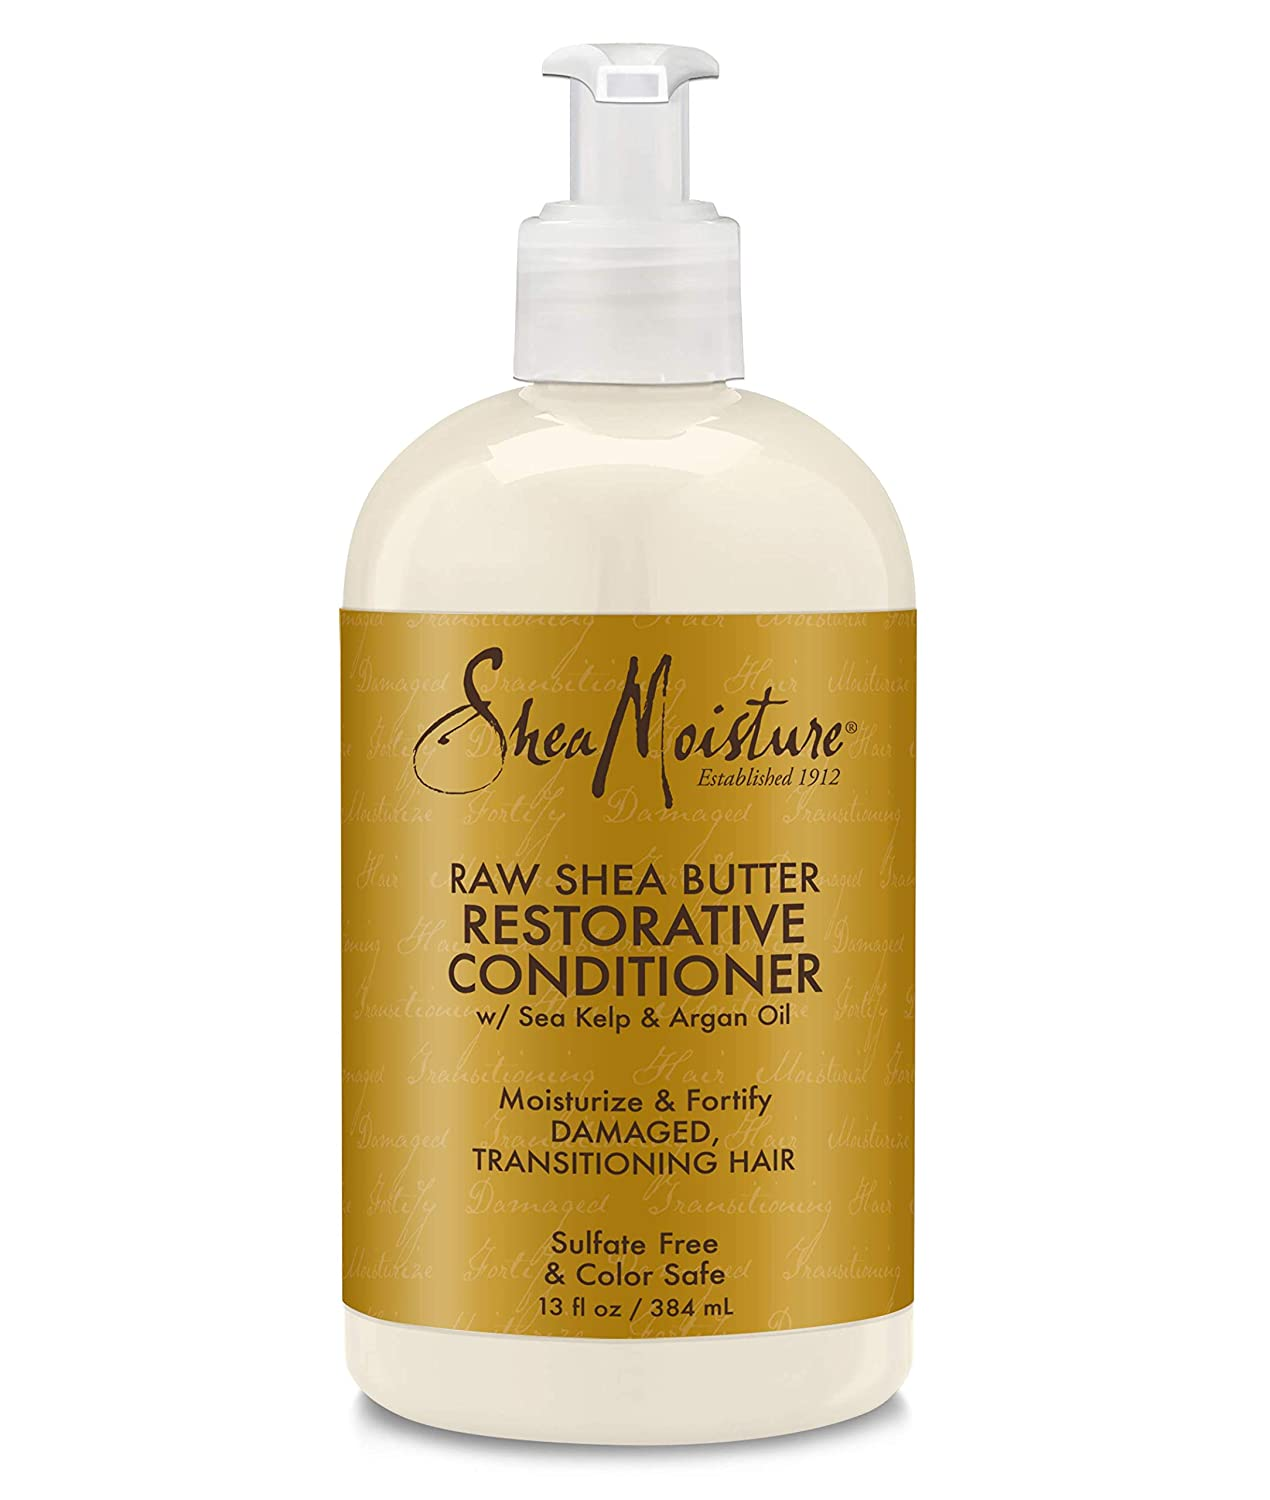 Shea Moisture Raw Shea Butter Restorative/Moisture Retention Conditioner, 13 Fl. Oz (Pack of 1) - Packaging May Vary